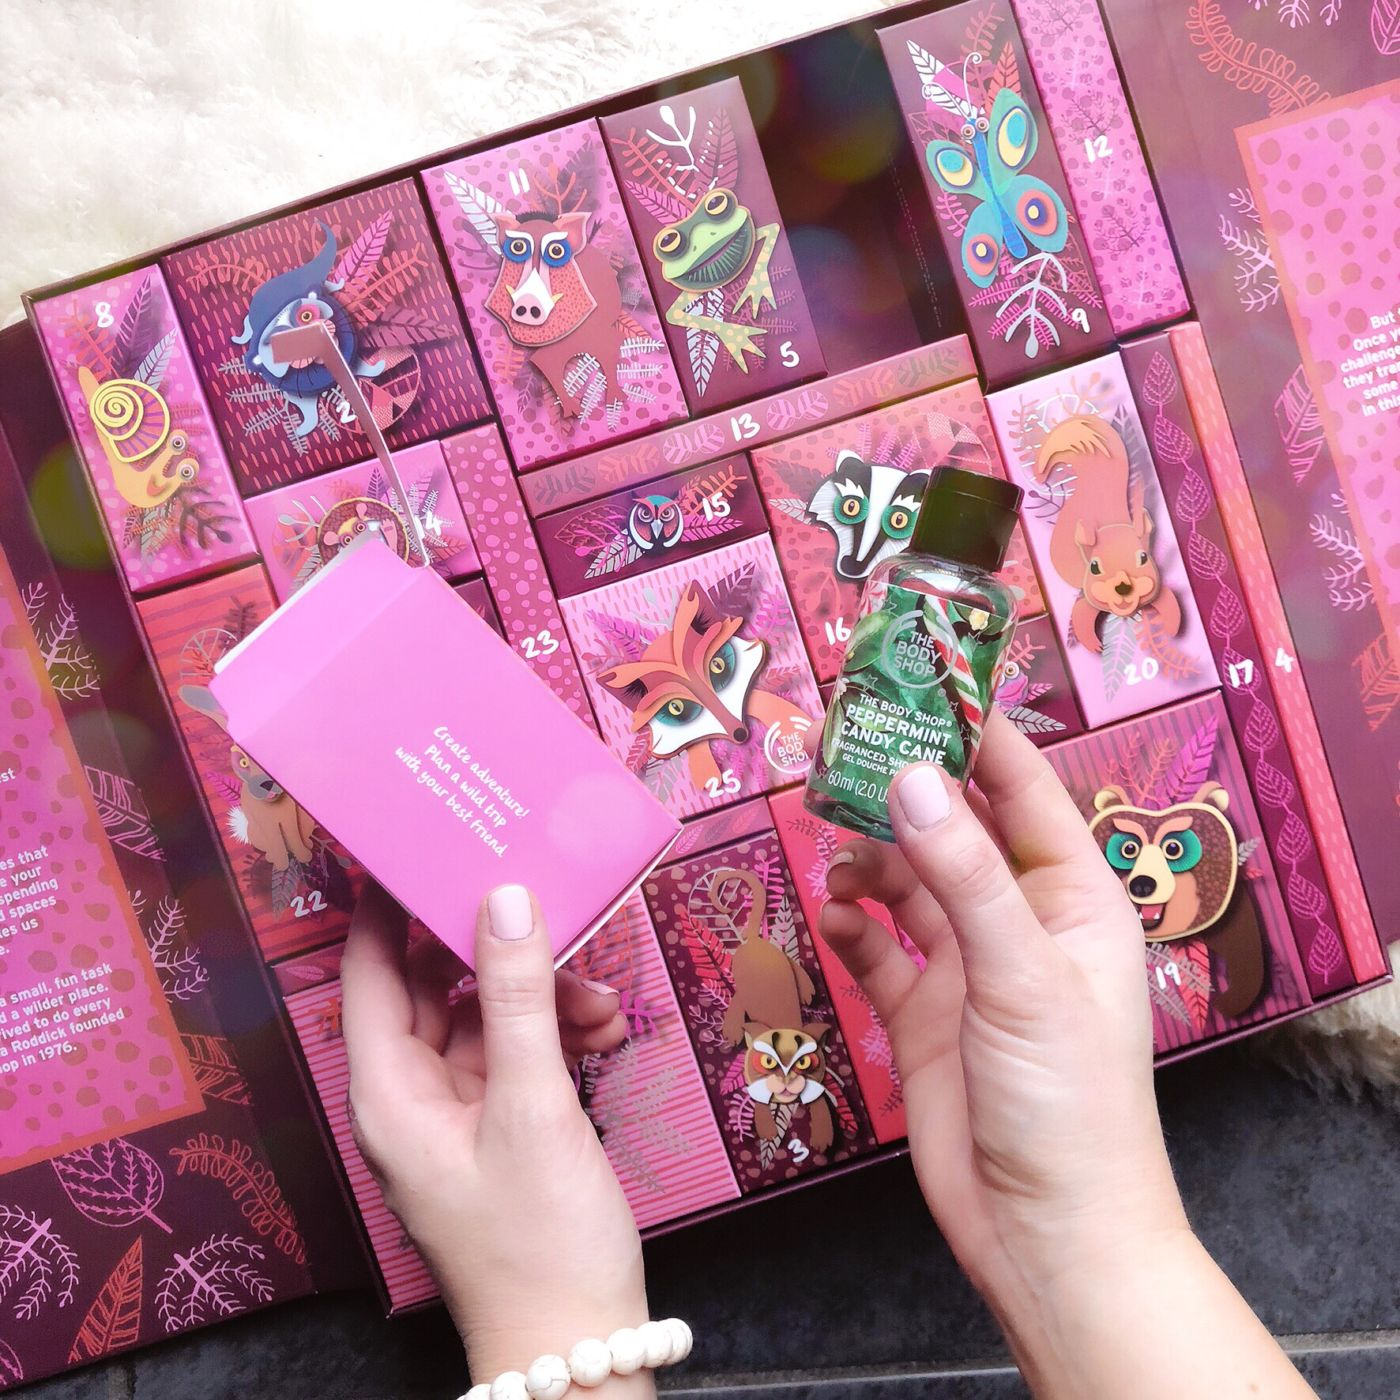 the body shop advent calendar, the bosy shop deluxe advent calendar, the body shop 25 days of the enchanted deluxe advent calendar, 2018 beauty advent calendars, best beauty advent calendars, the body shop holiday gift